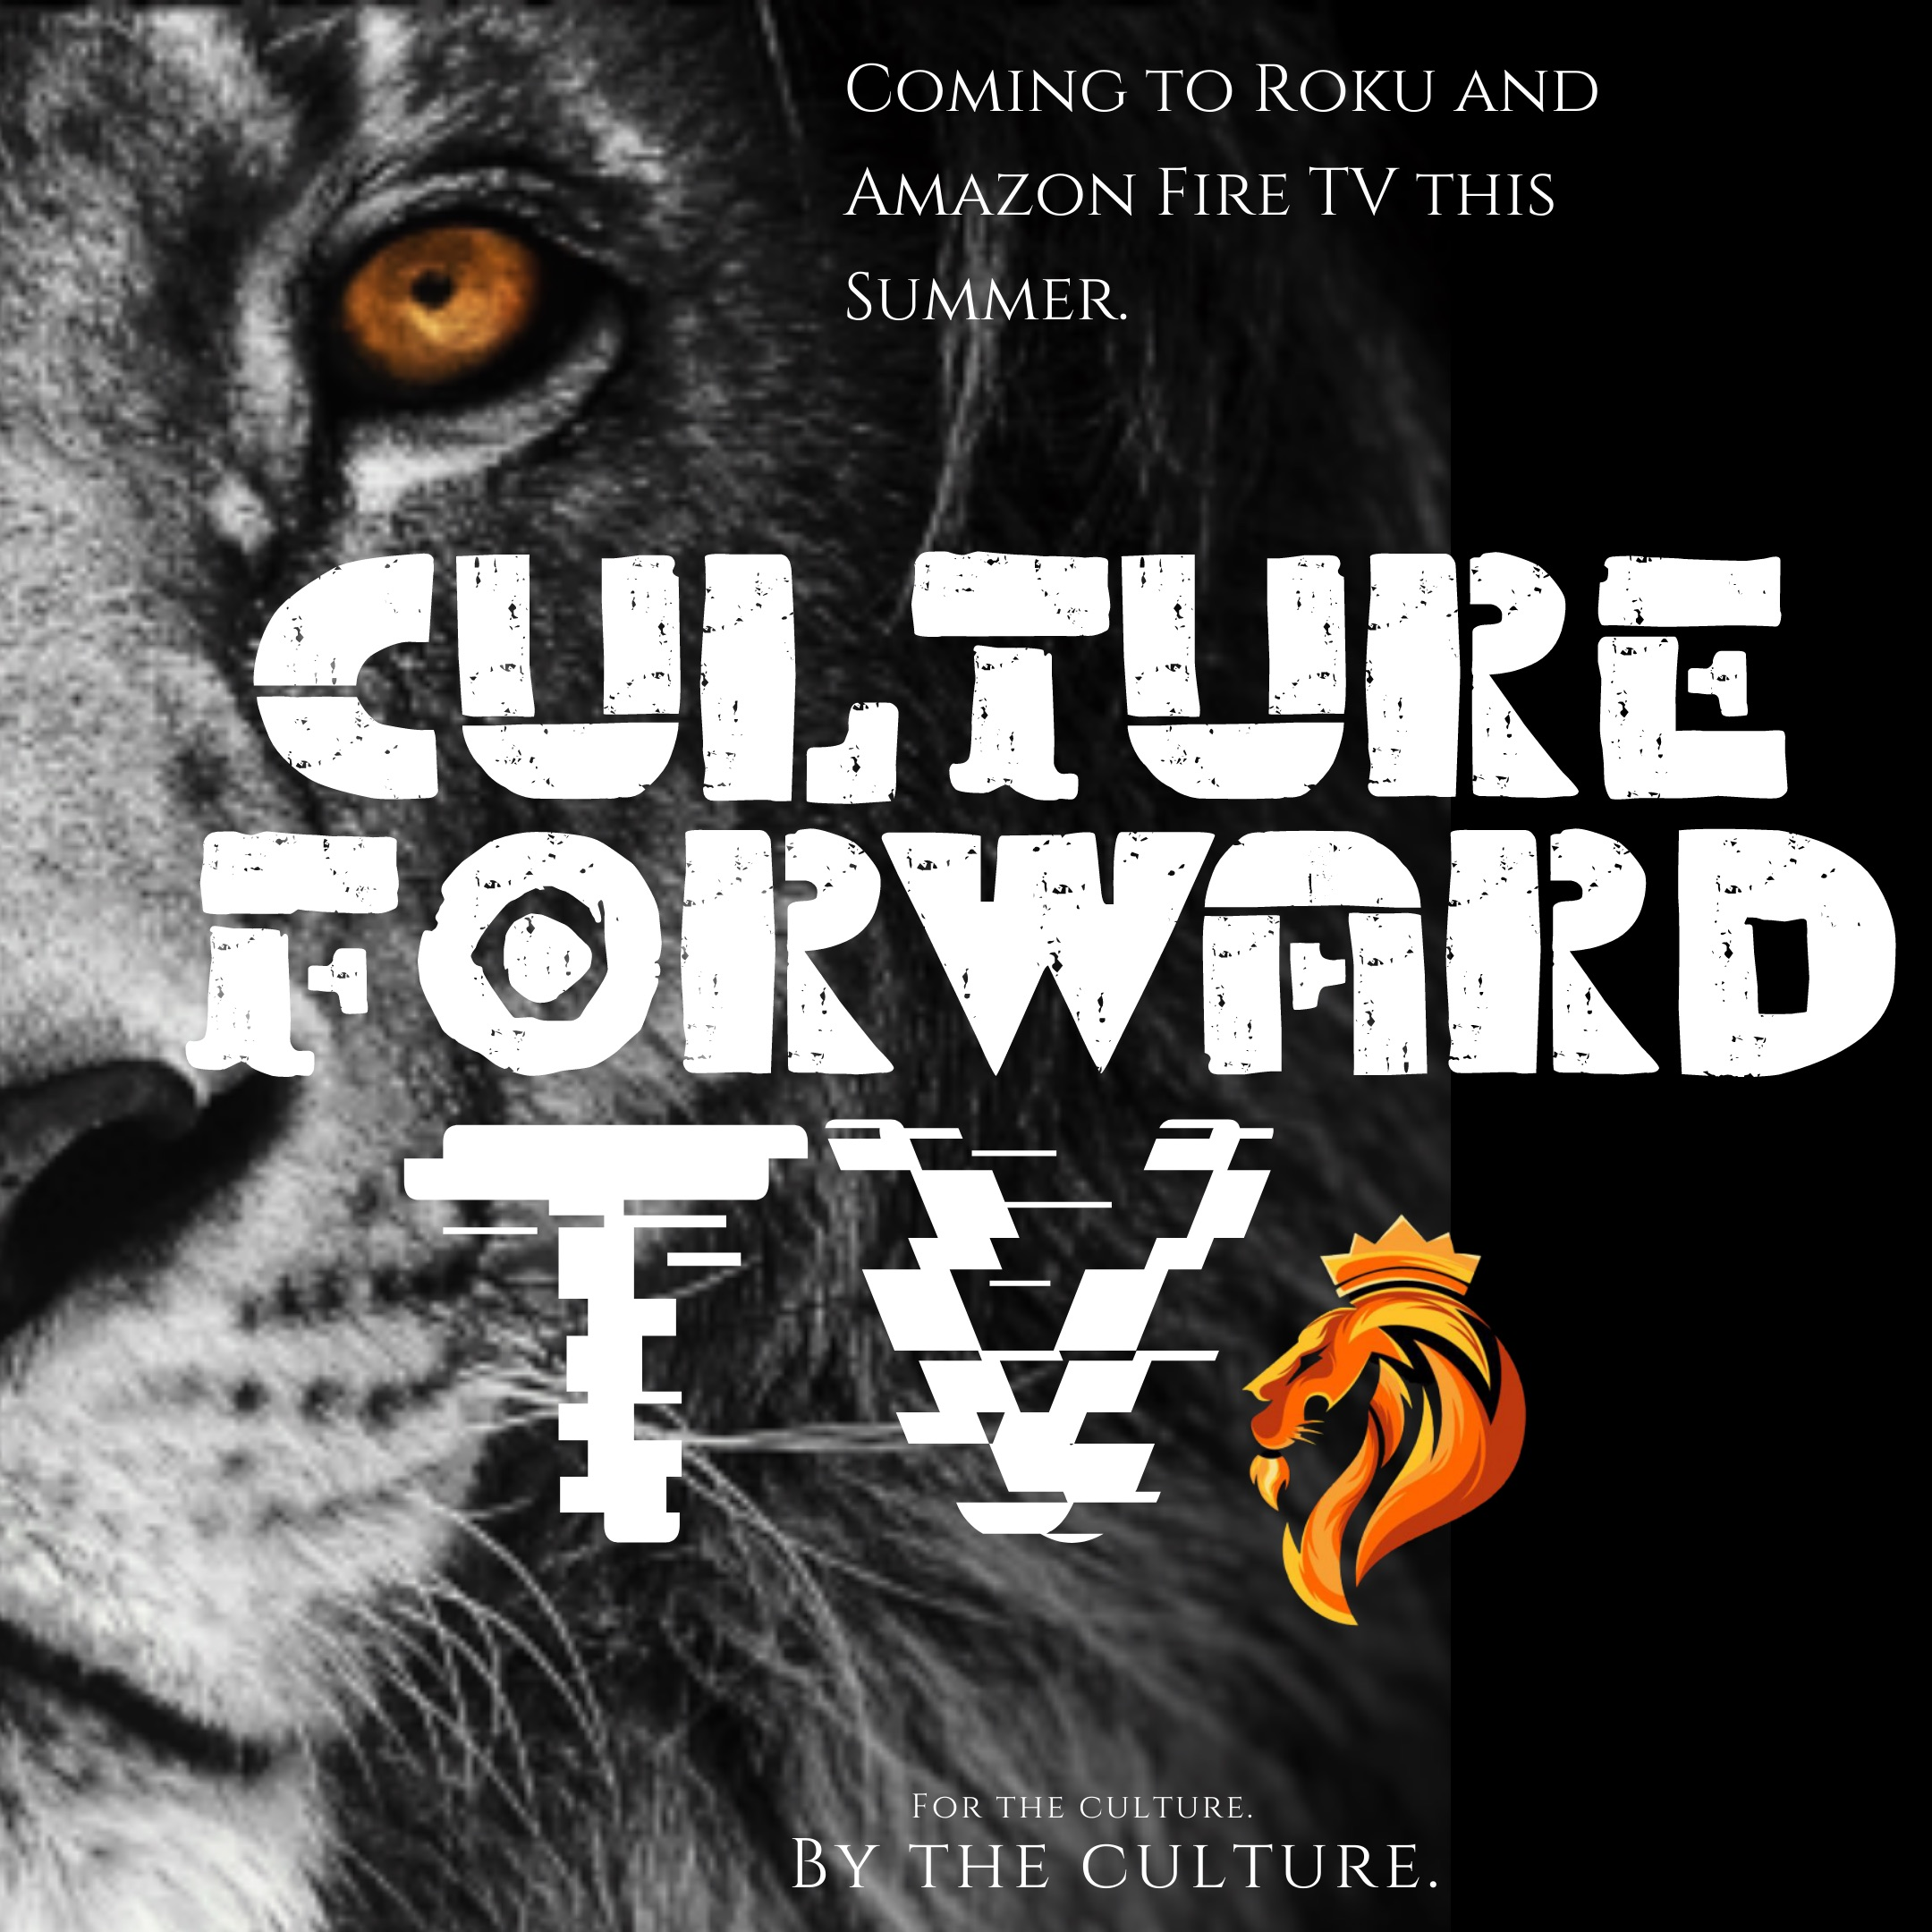 Streaming Channel Culture Forward TV is Looking to Bring Control Back to The Culture